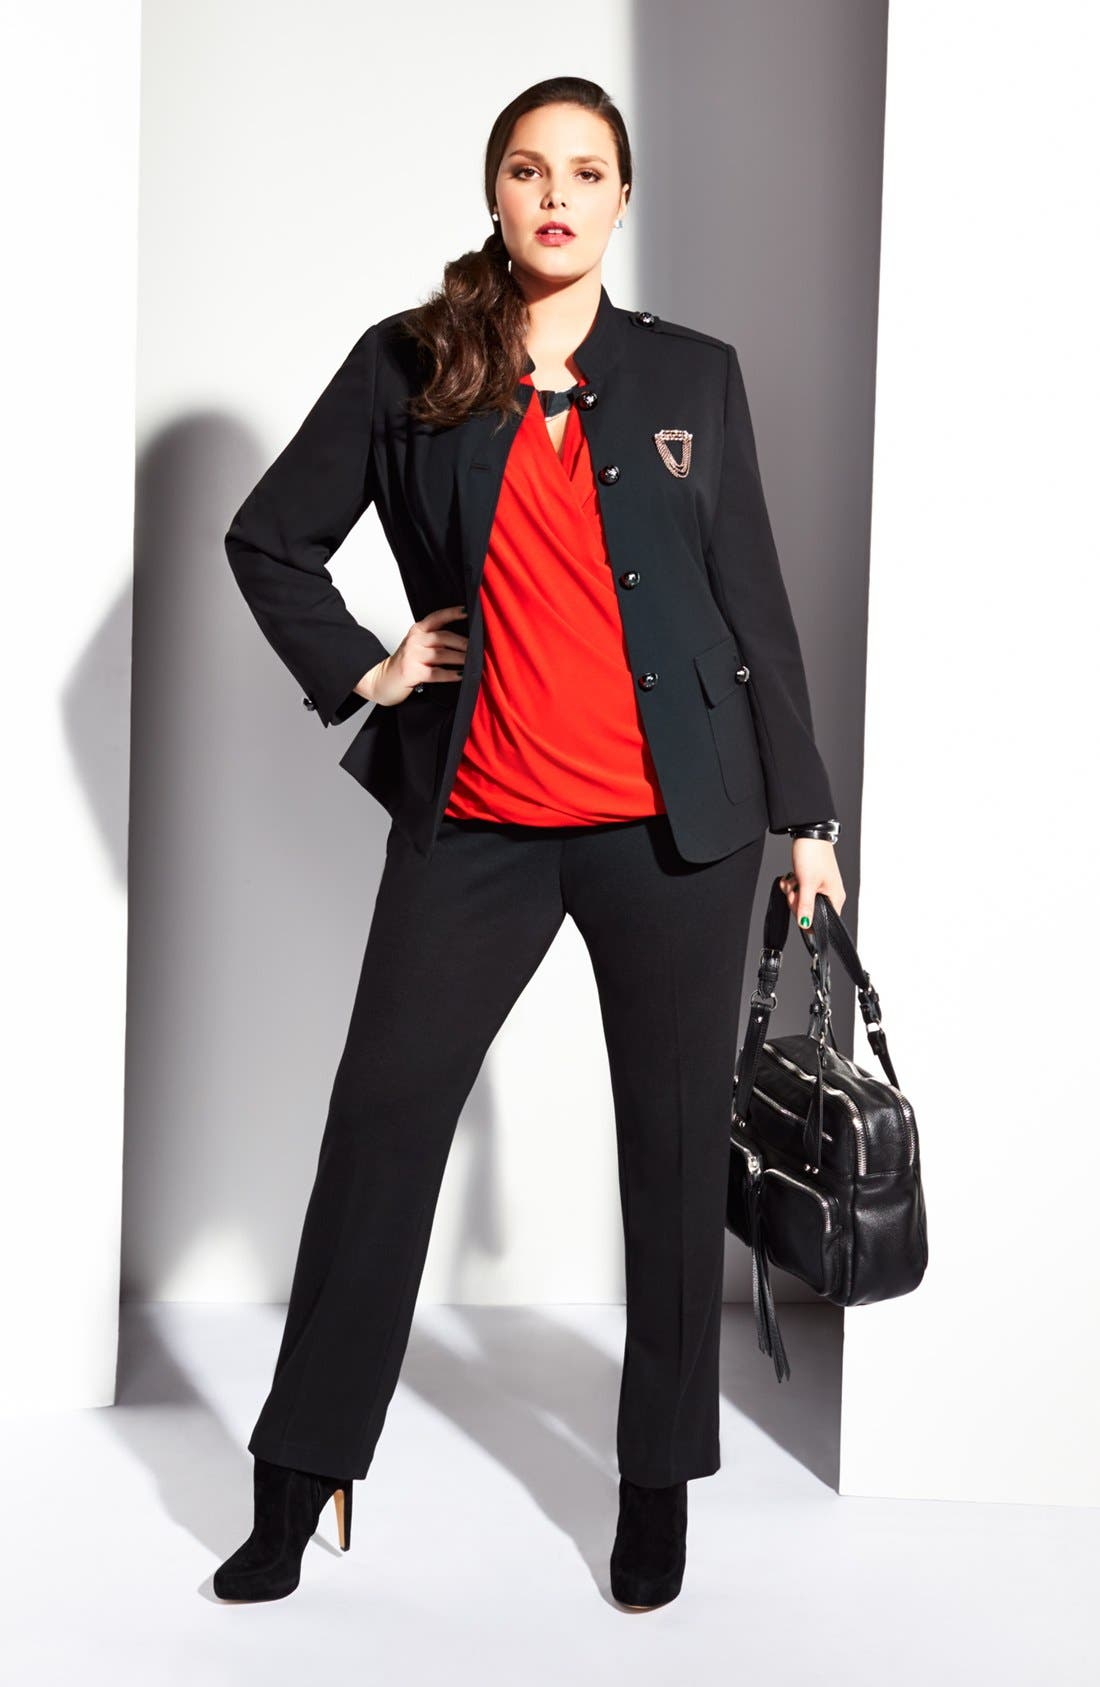 Alternate Image 1 Selected - Vince Camuto Wrap Top, Military Jacket & Trouser Pants